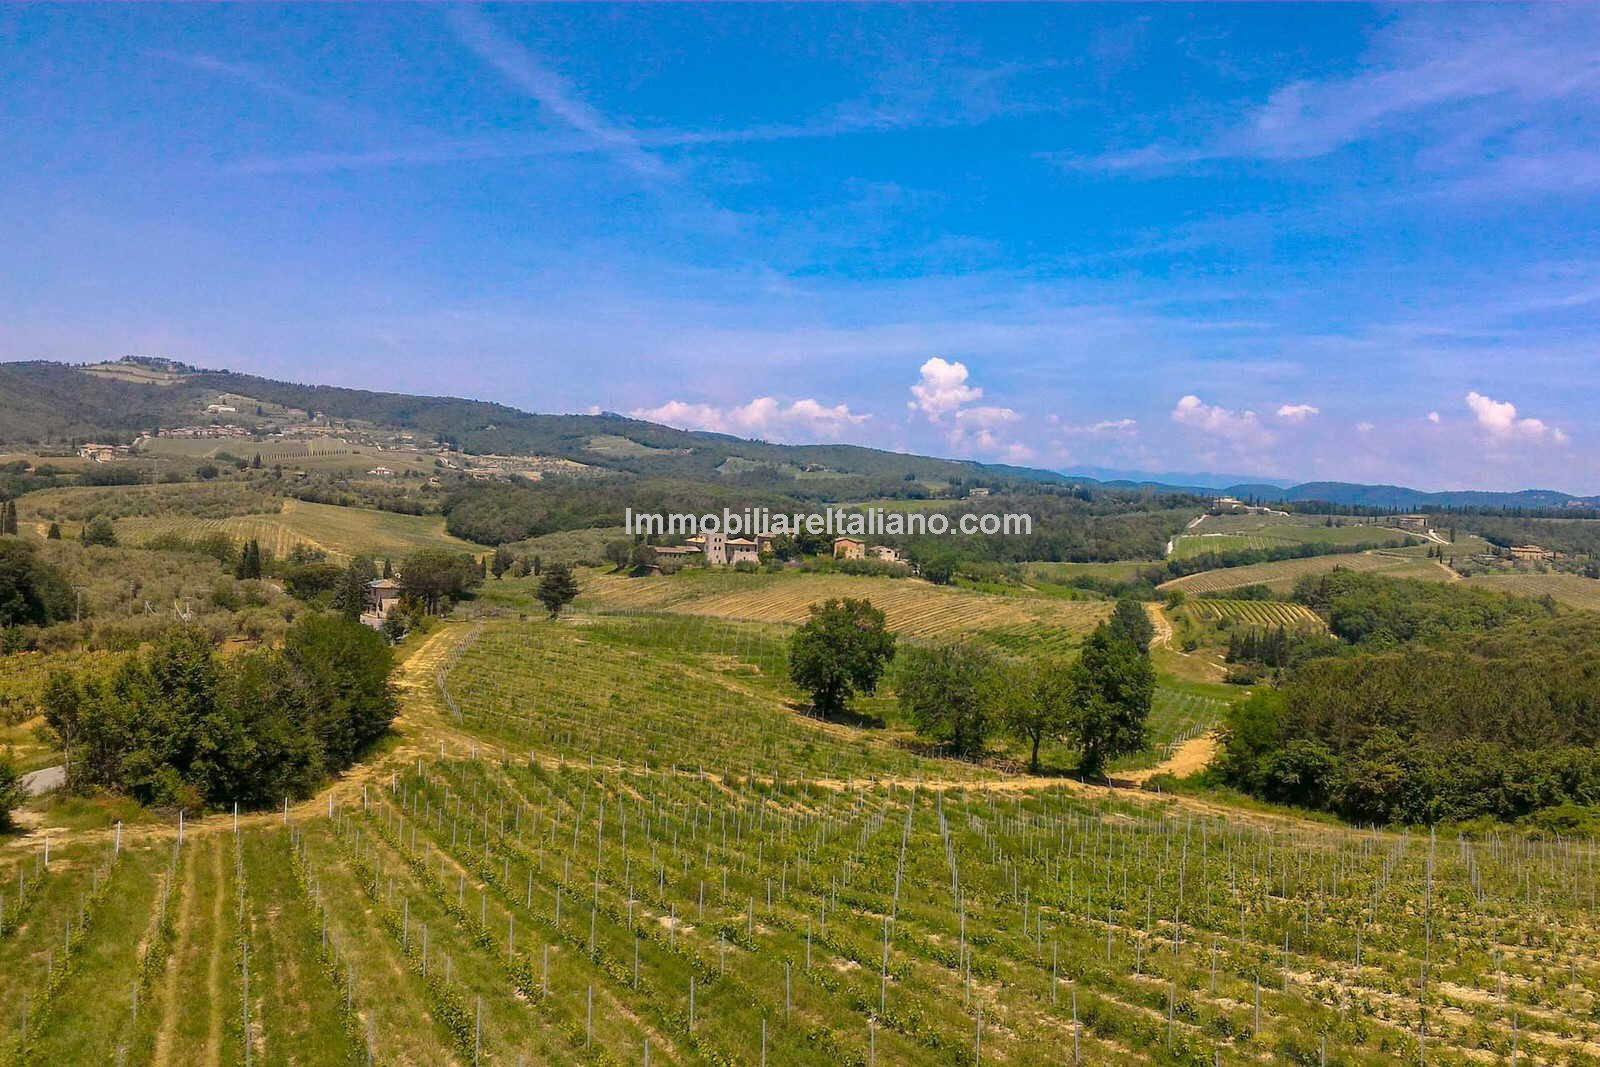 Chianti Vineyard estate for sale in Tuscany